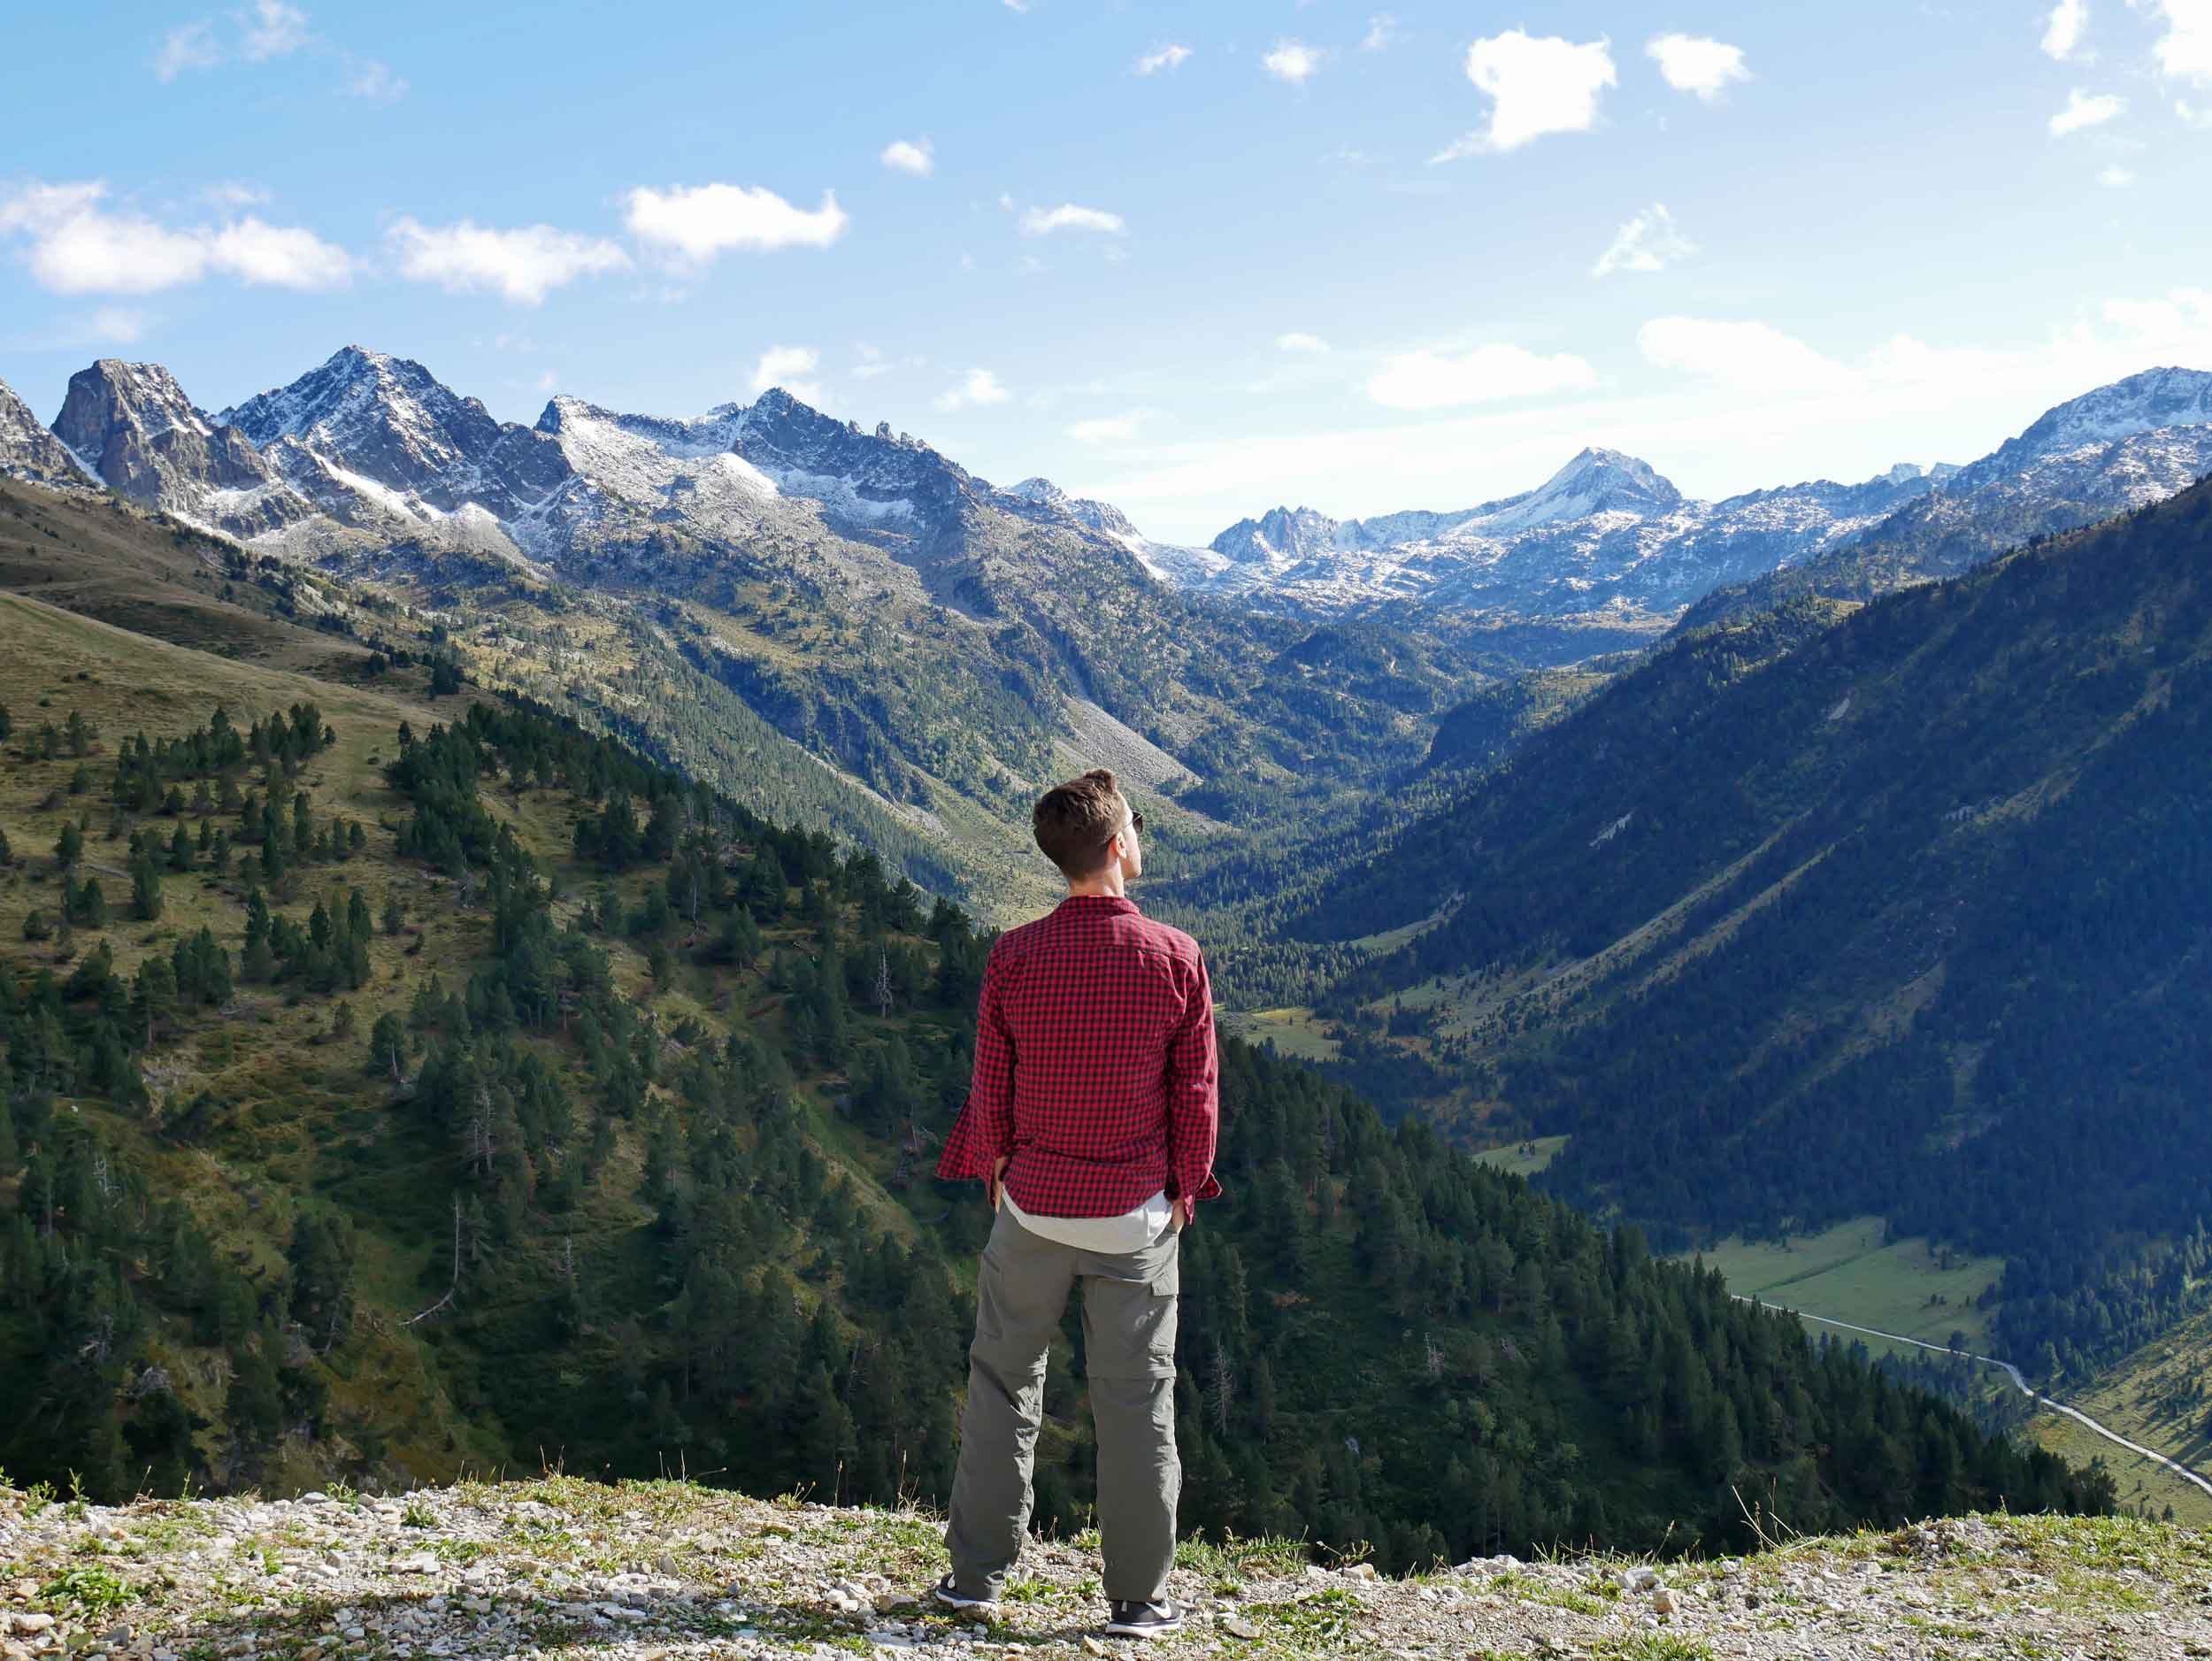 Martin takes a break from driving to take in the view as we entered the Pyrenees.